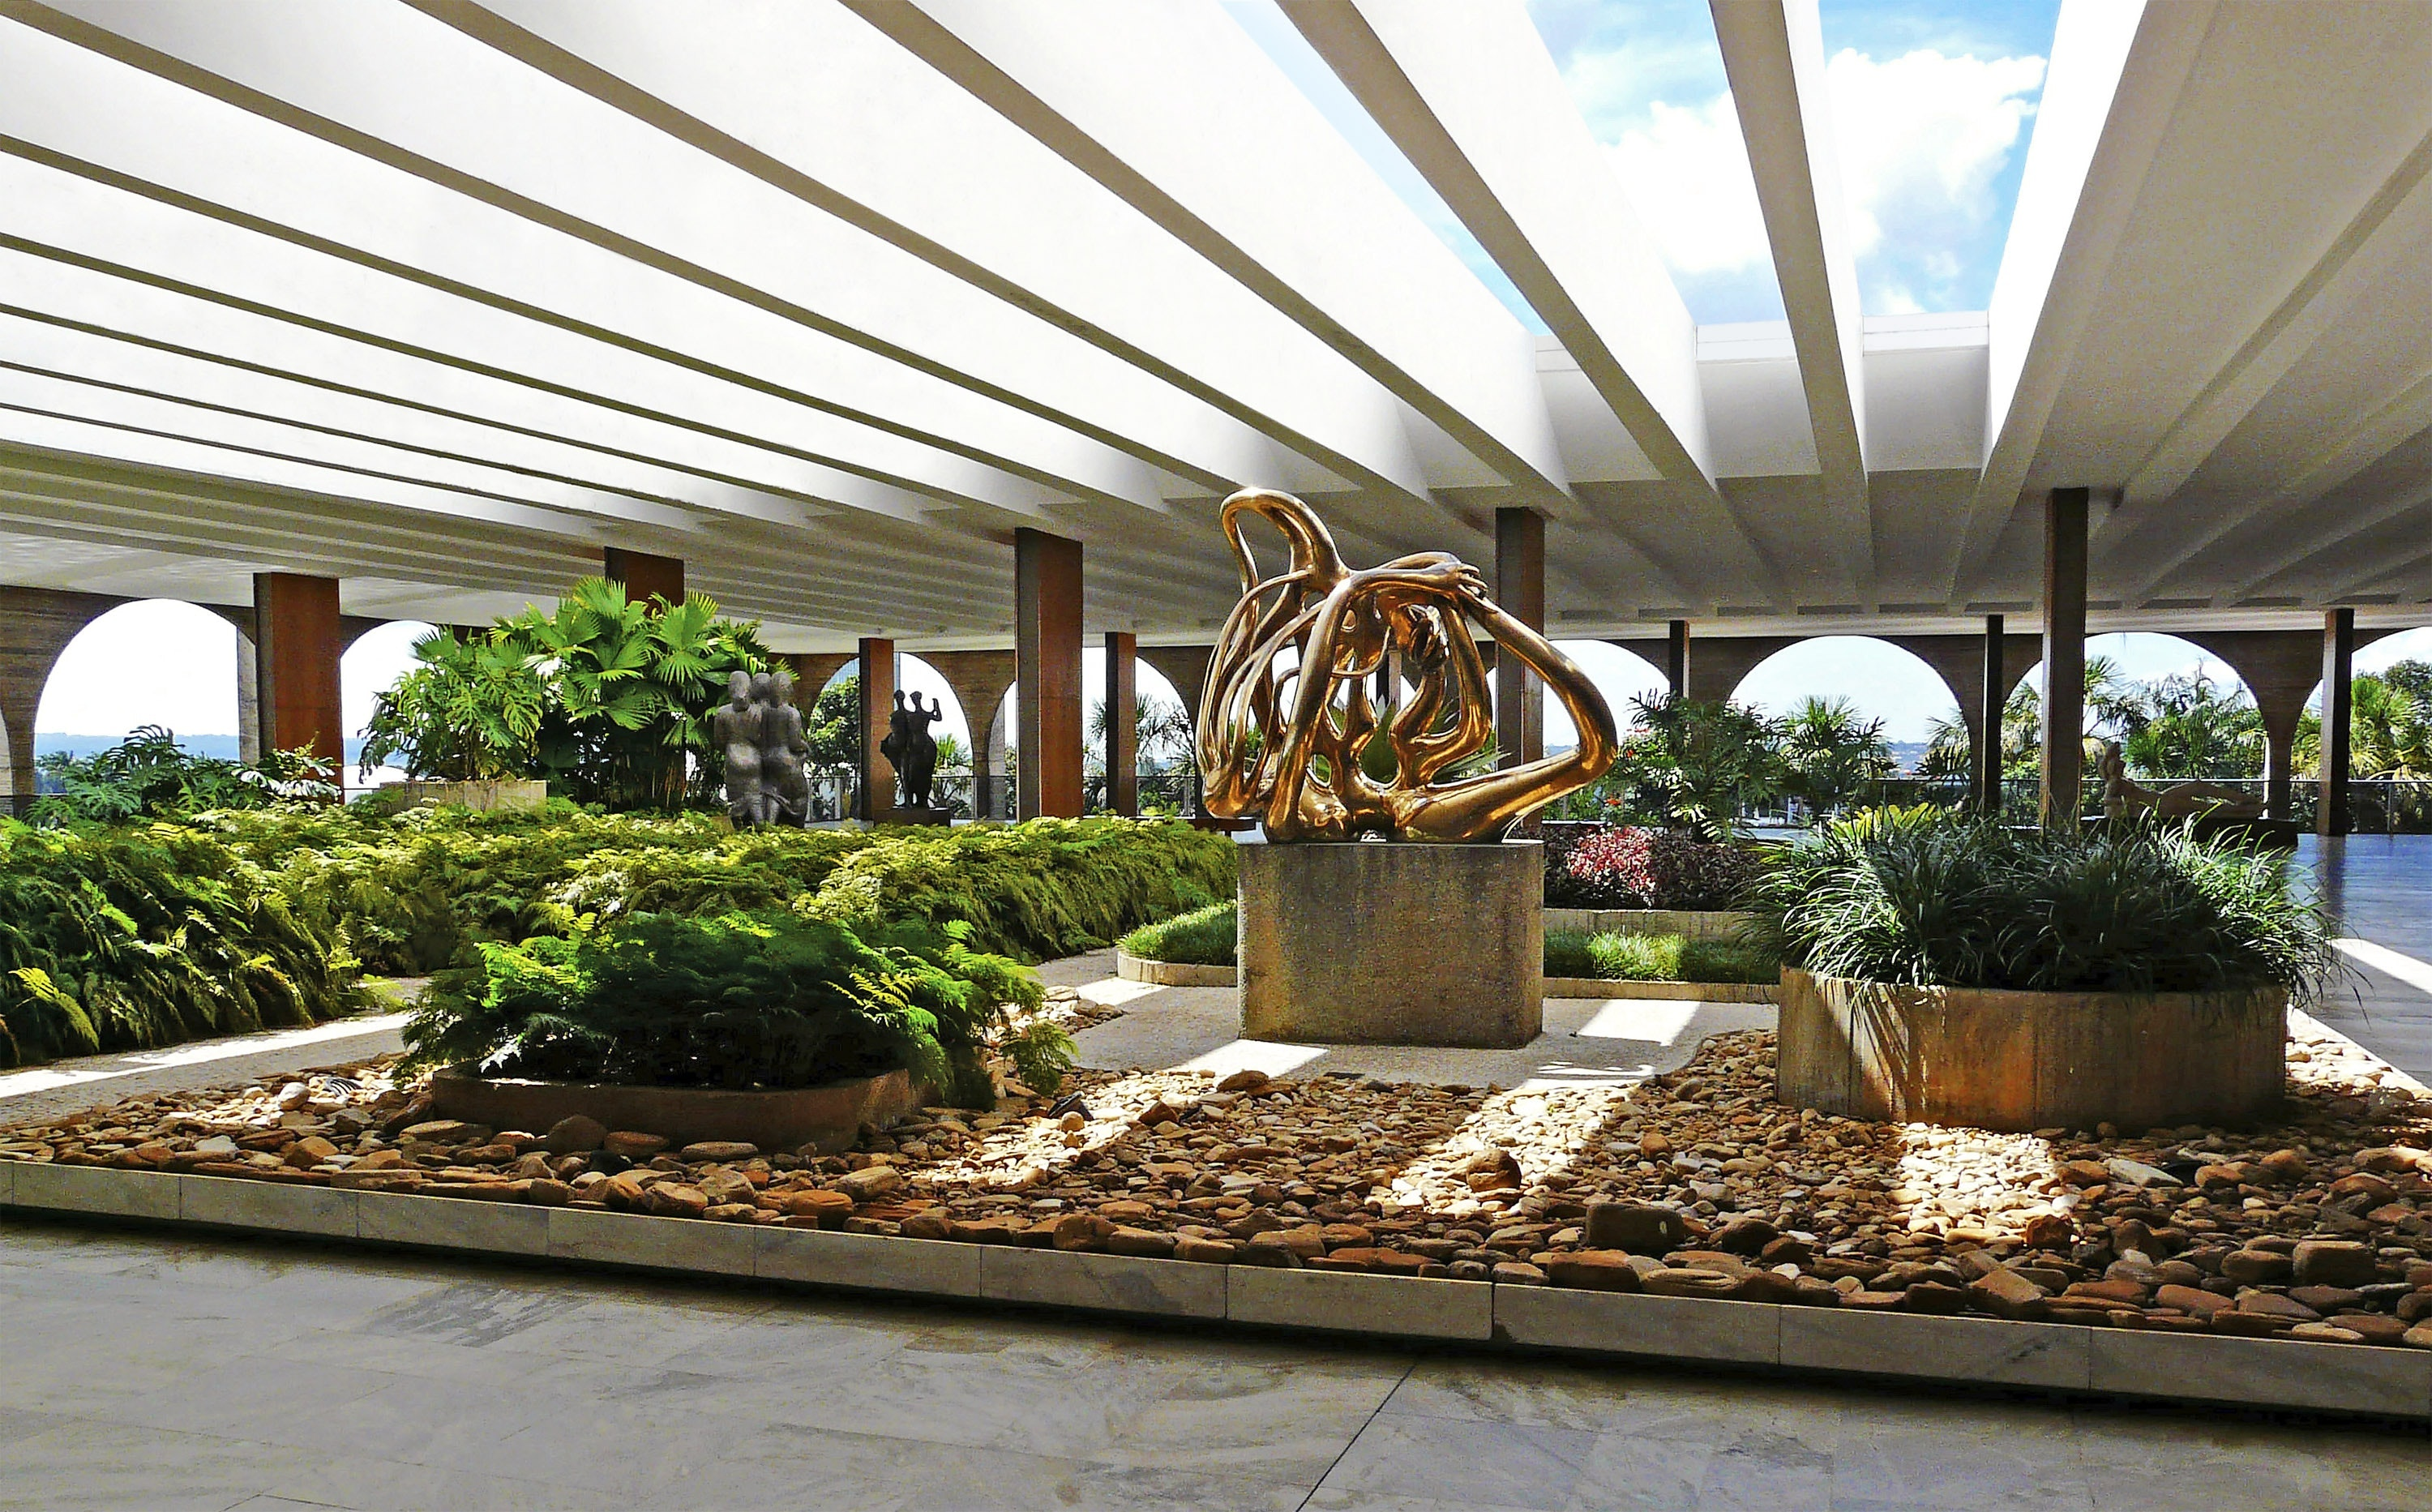 Catch a nice view of the Congressional building from the Palácio do Itamaraty Rooftop Garden.